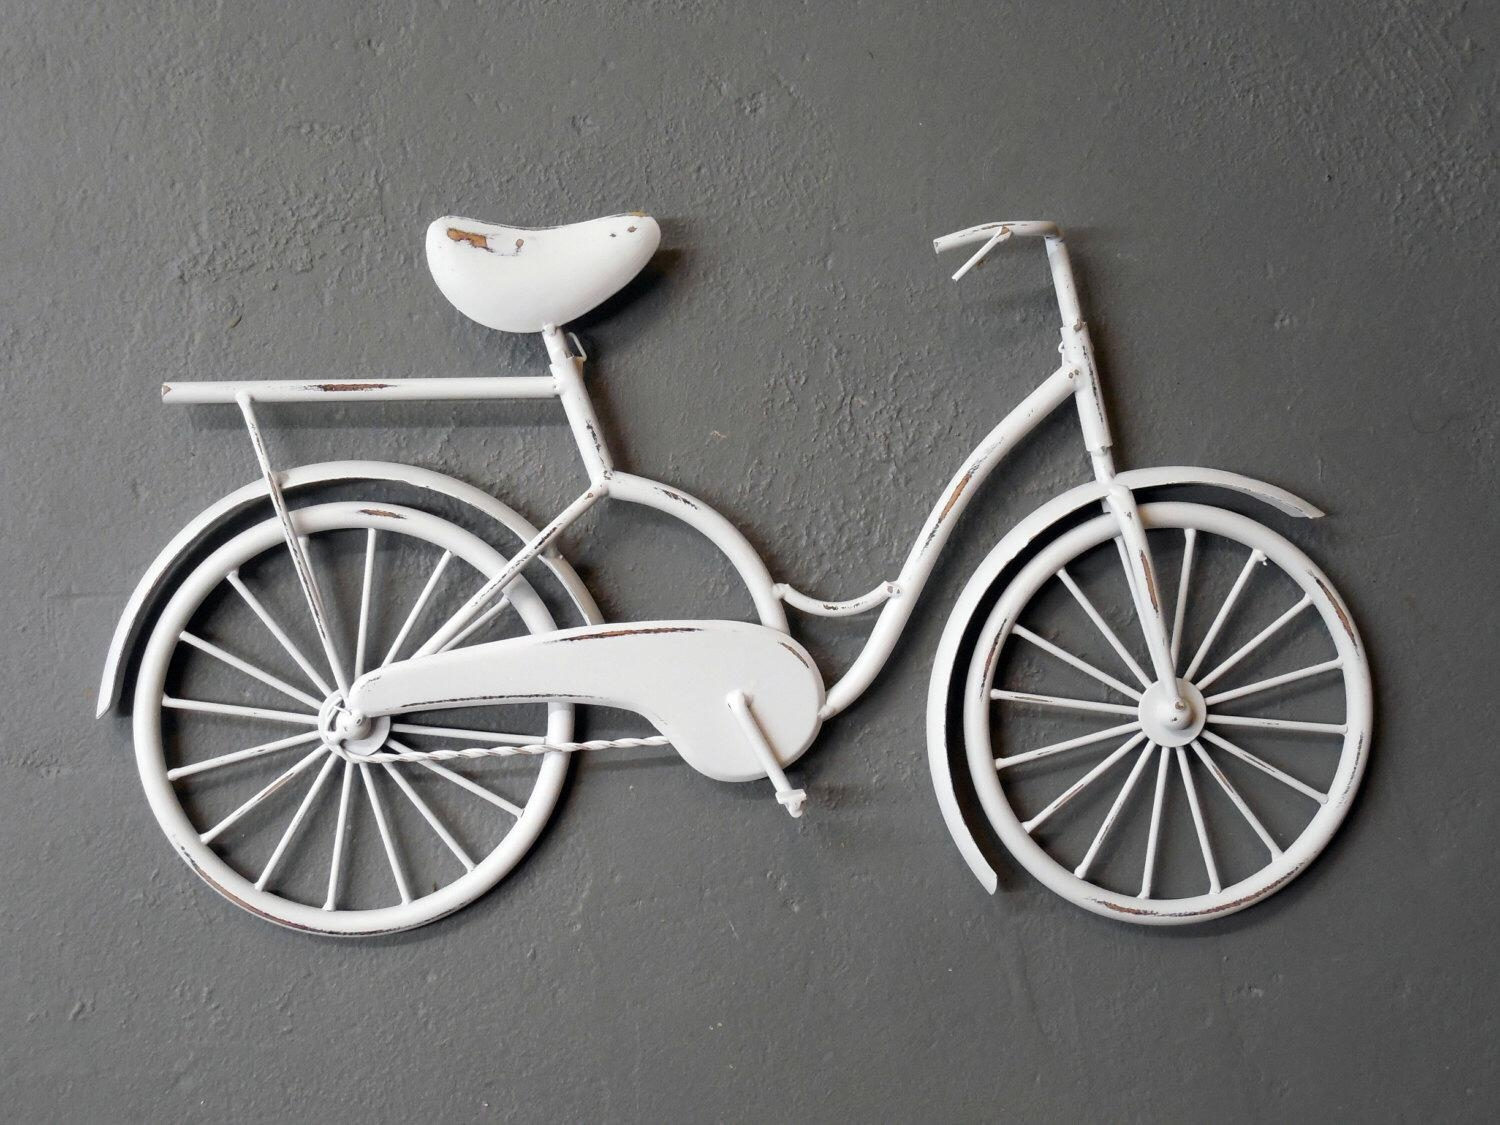 Wall Decor: Metal Bicycle Wall Art Design (View 20 of 20)